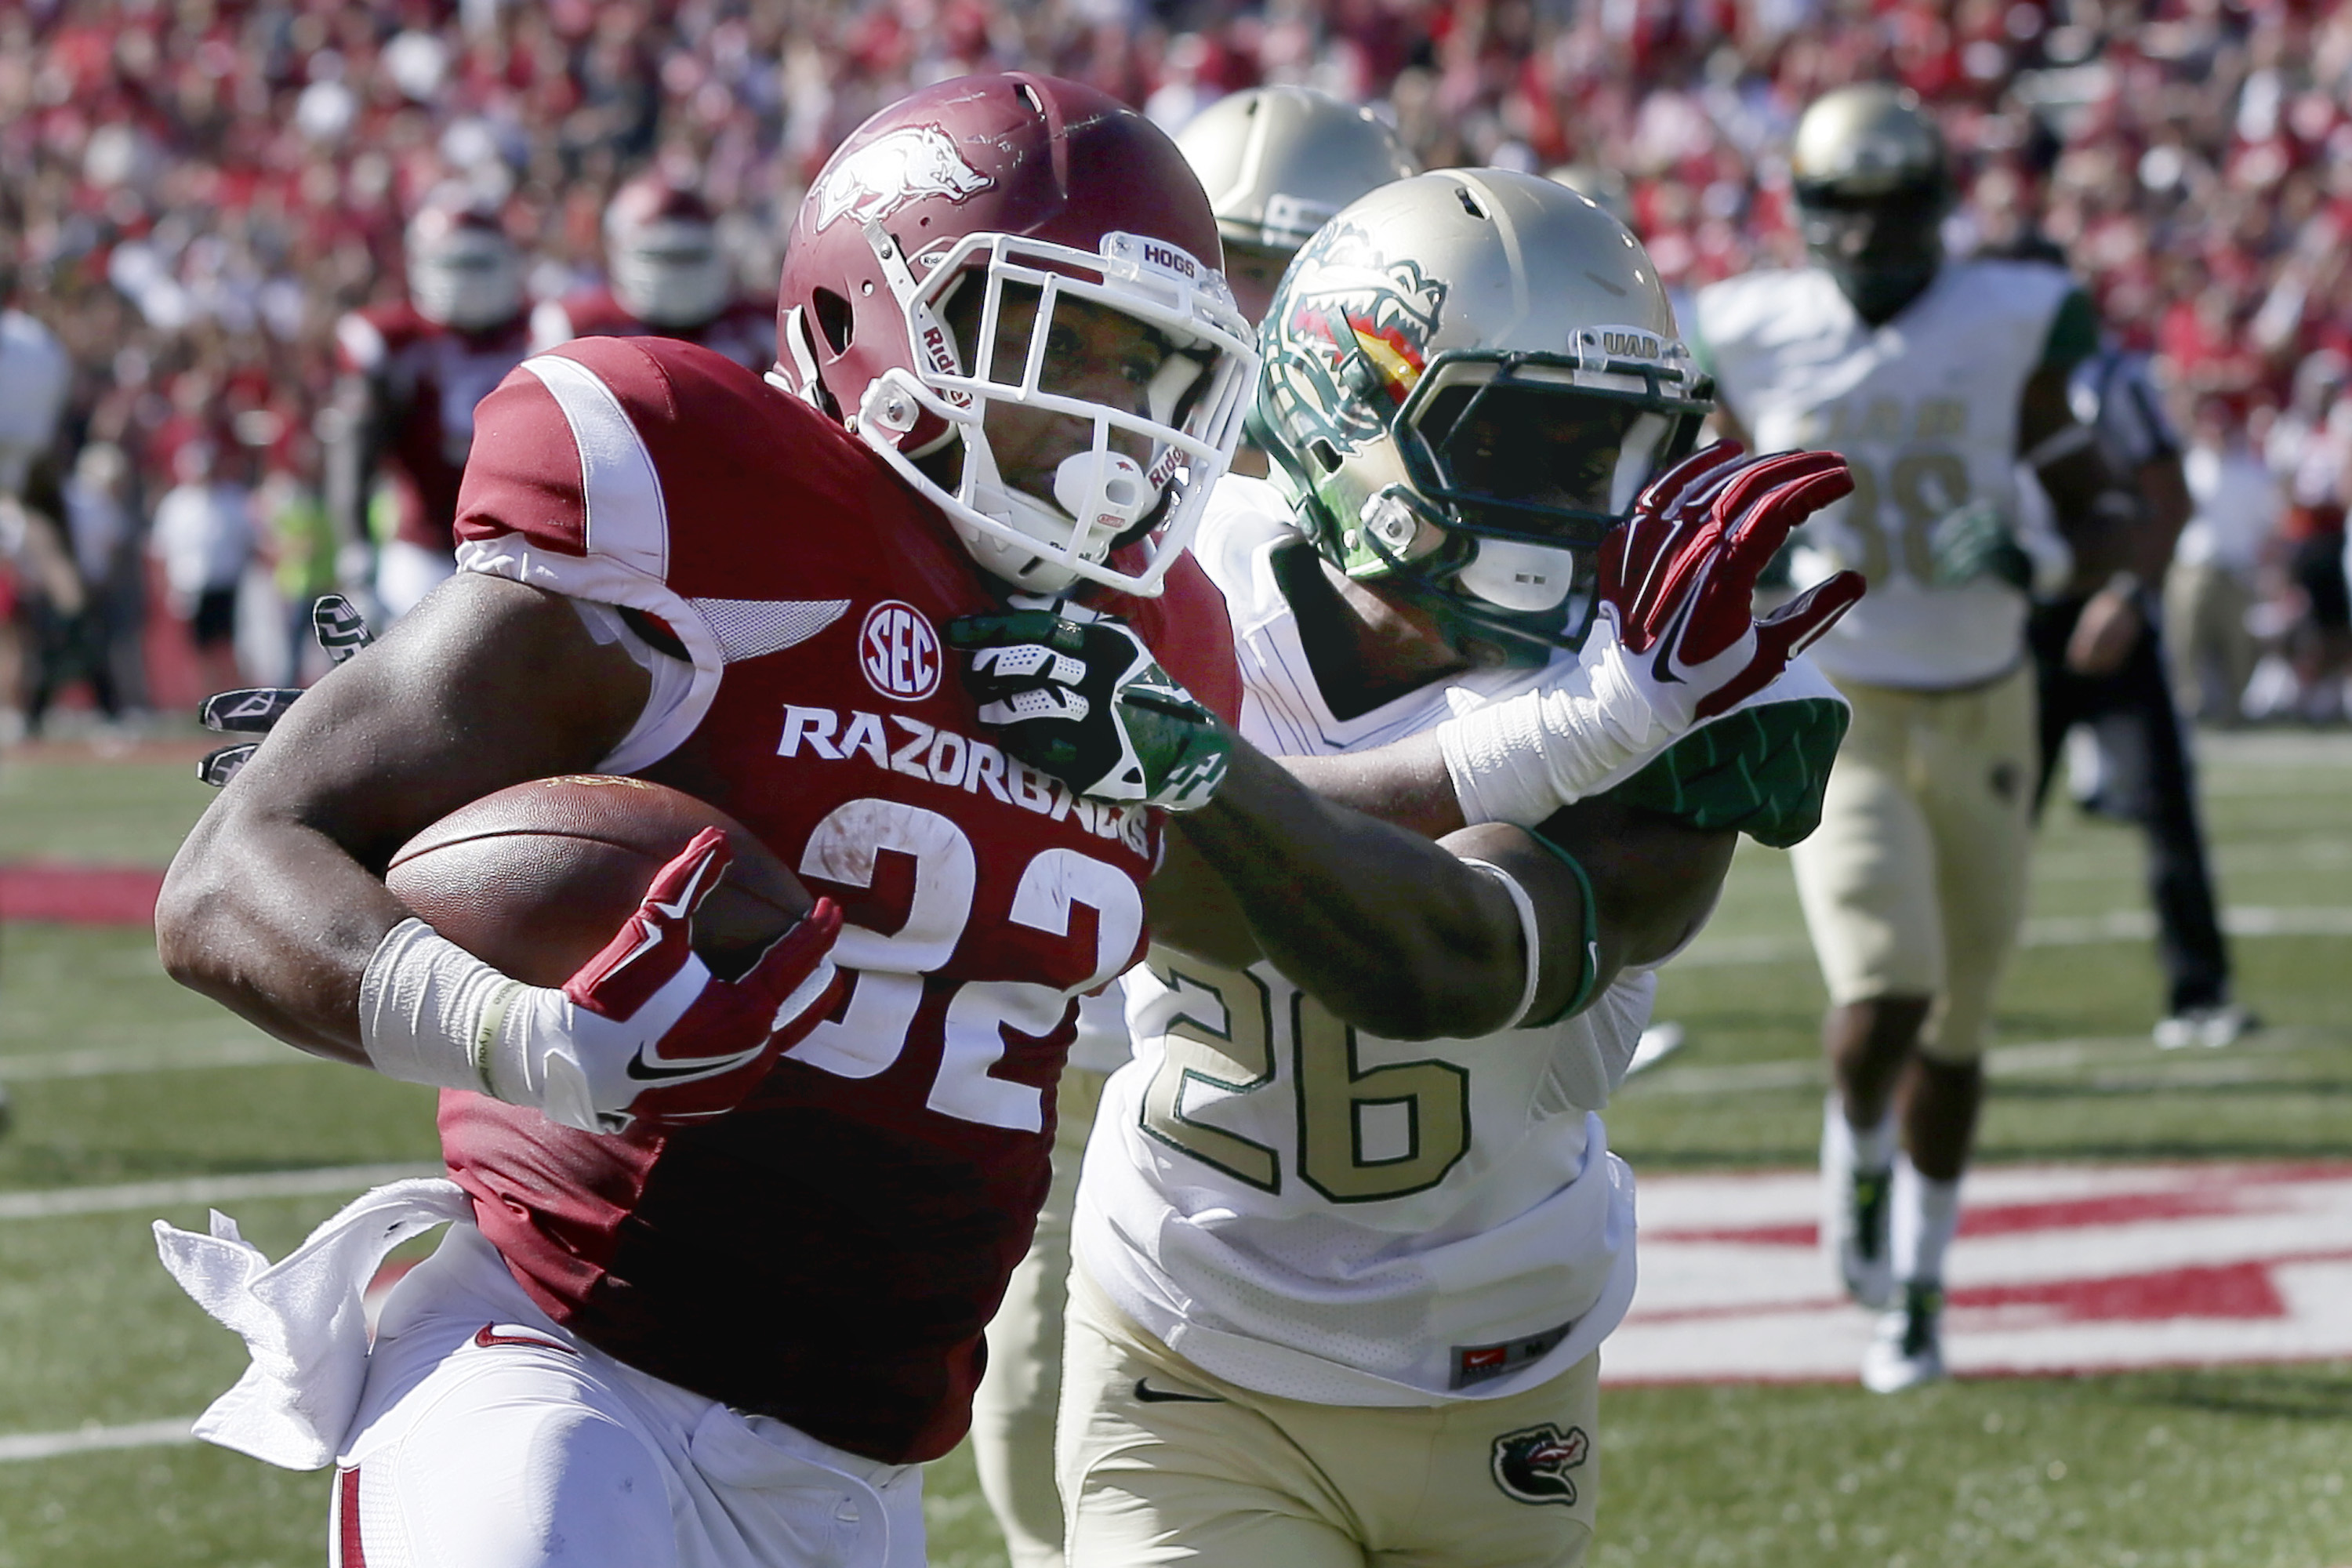 Arkansas running back Jonathan Williams (32) pushes UAB cornerback Rolan Milligan (26) away in the first half of an NCAA college football game in Fayetteville, Ark., Saturday, Oct. 25, 2014. (AP Photo/Danny Johnston)